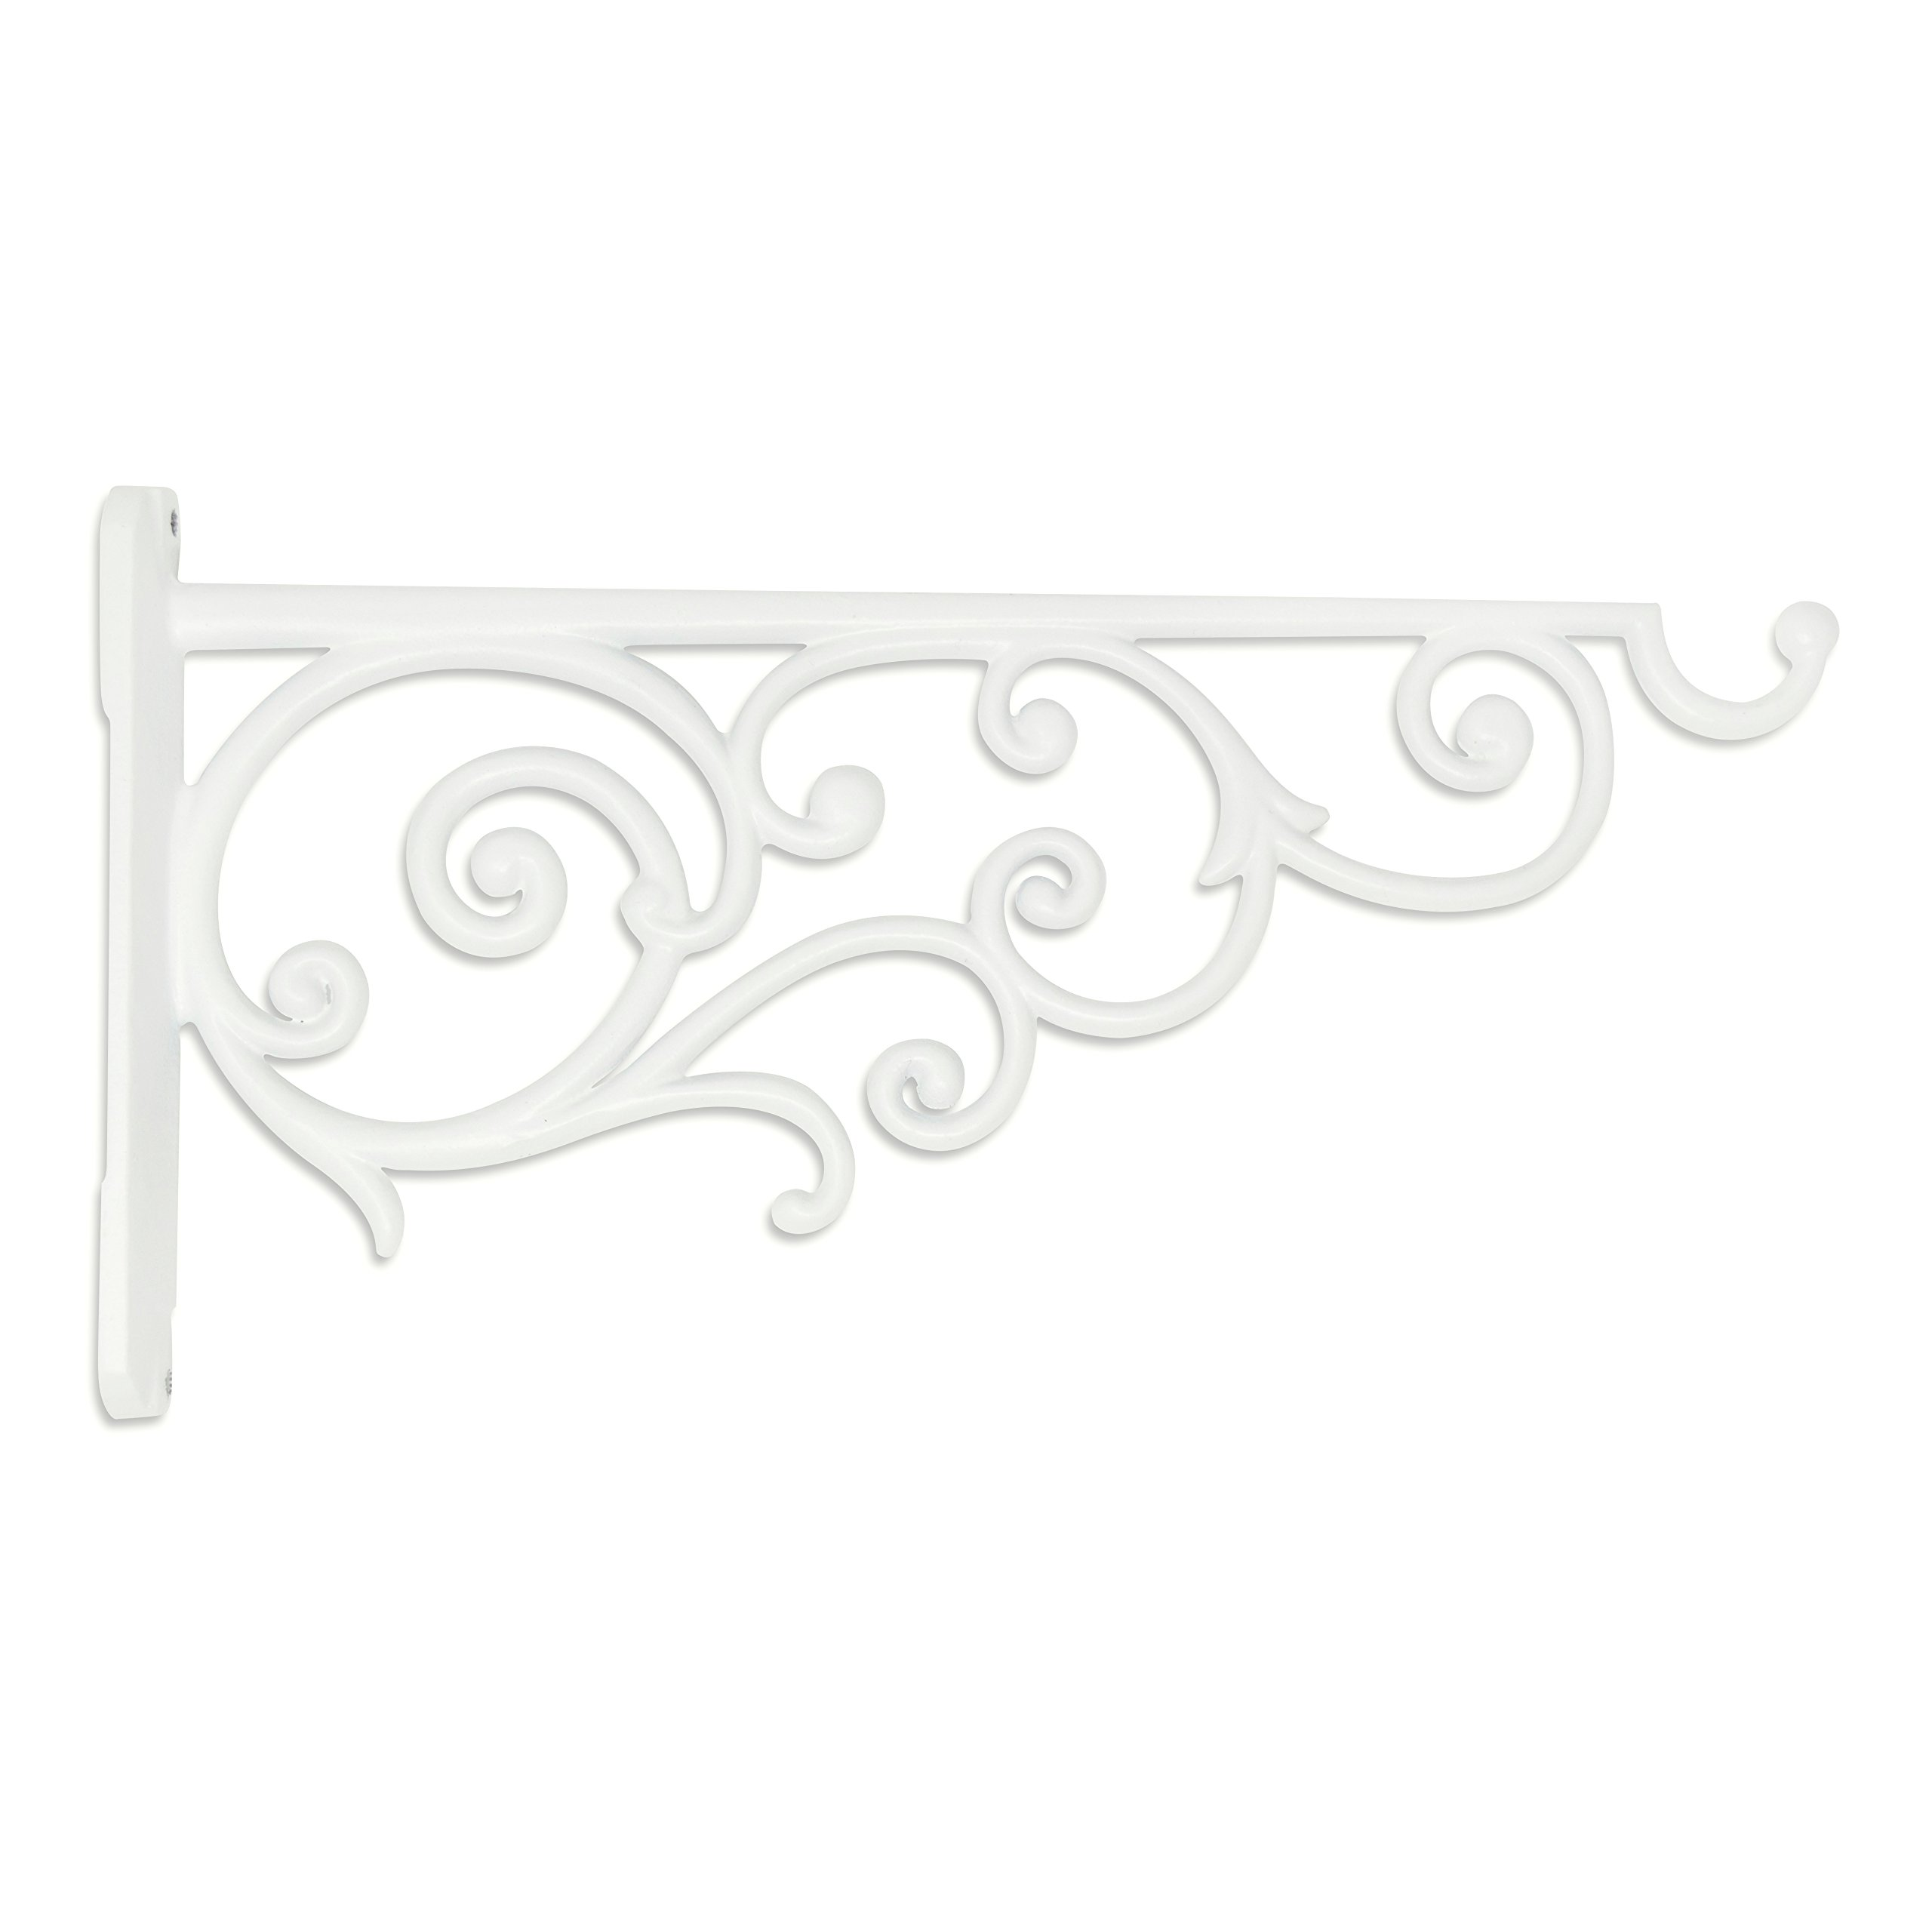 GrayBunny GB-6878W1 Victorian Wall Hook, 14 Inch, White, For Bird Feeders, Planters, Lanterns, Wind Chimes, As Wall Brackets and More! by GrayBunny